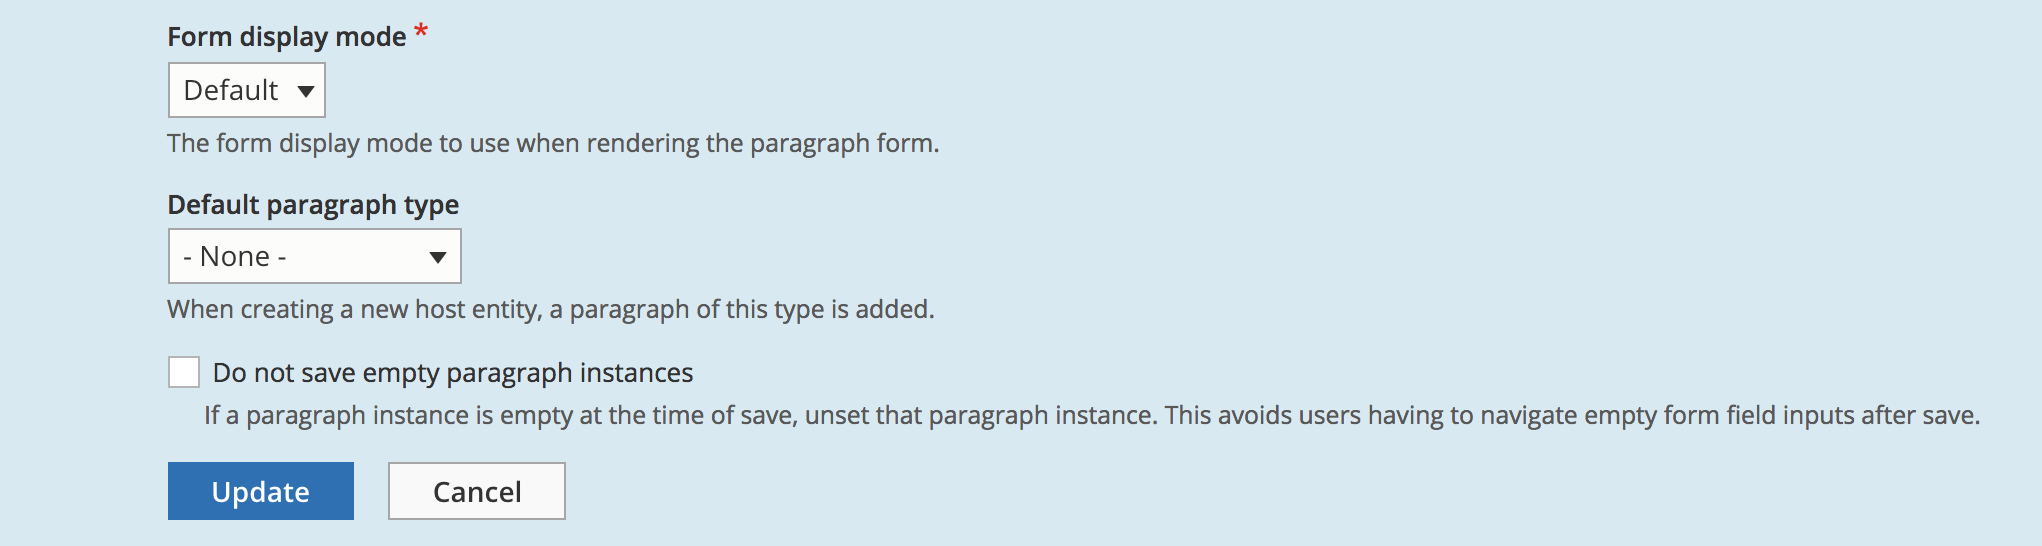 Skip saving empty paragraphs for certain types [#2877695